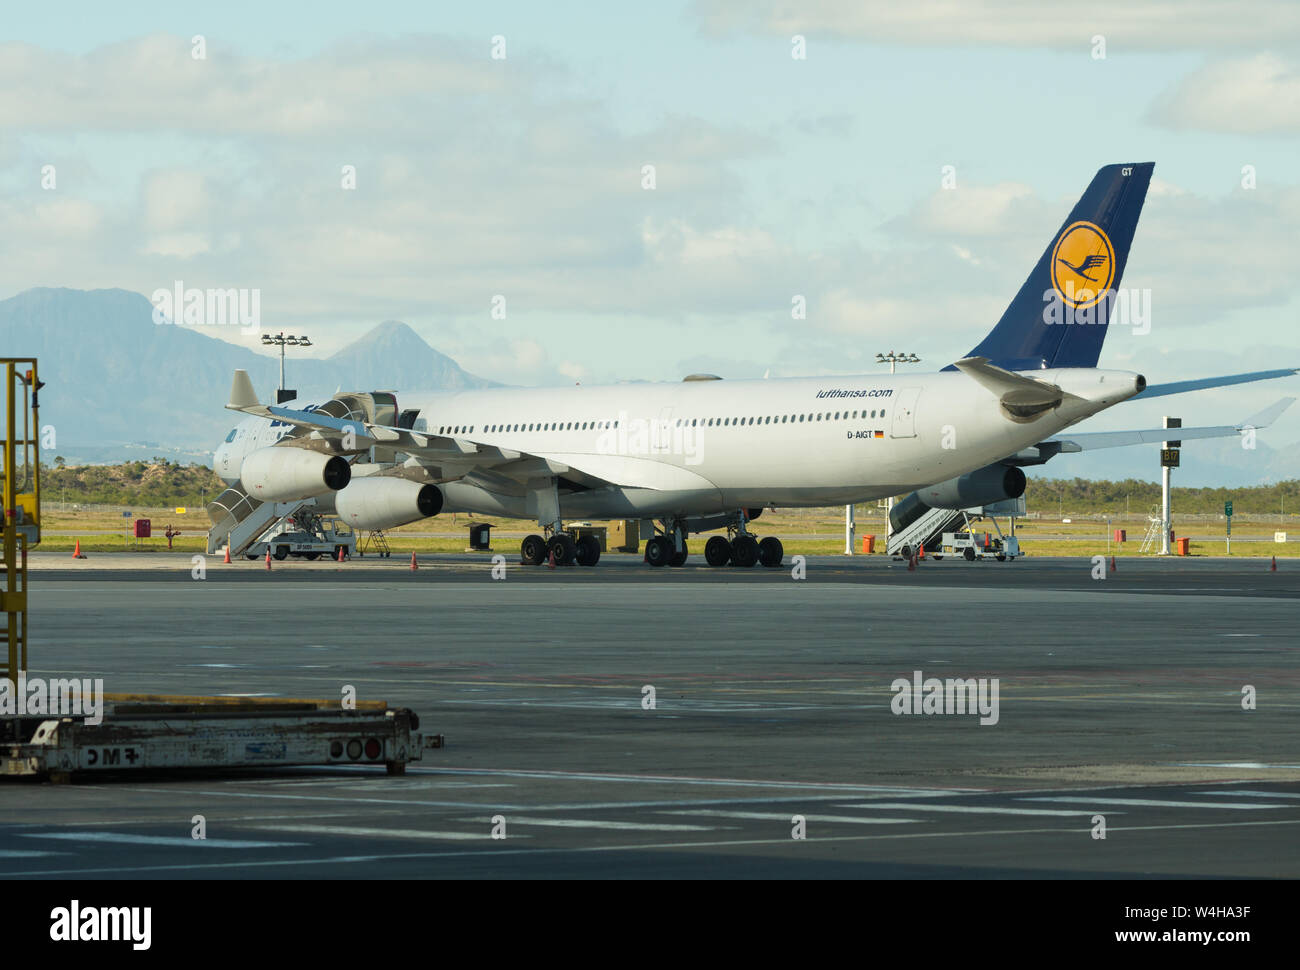 Lufthansa German Airlines commercial airliner and airplane parked on the tarmac at Cape Town International airport, South Africa Stock Photo